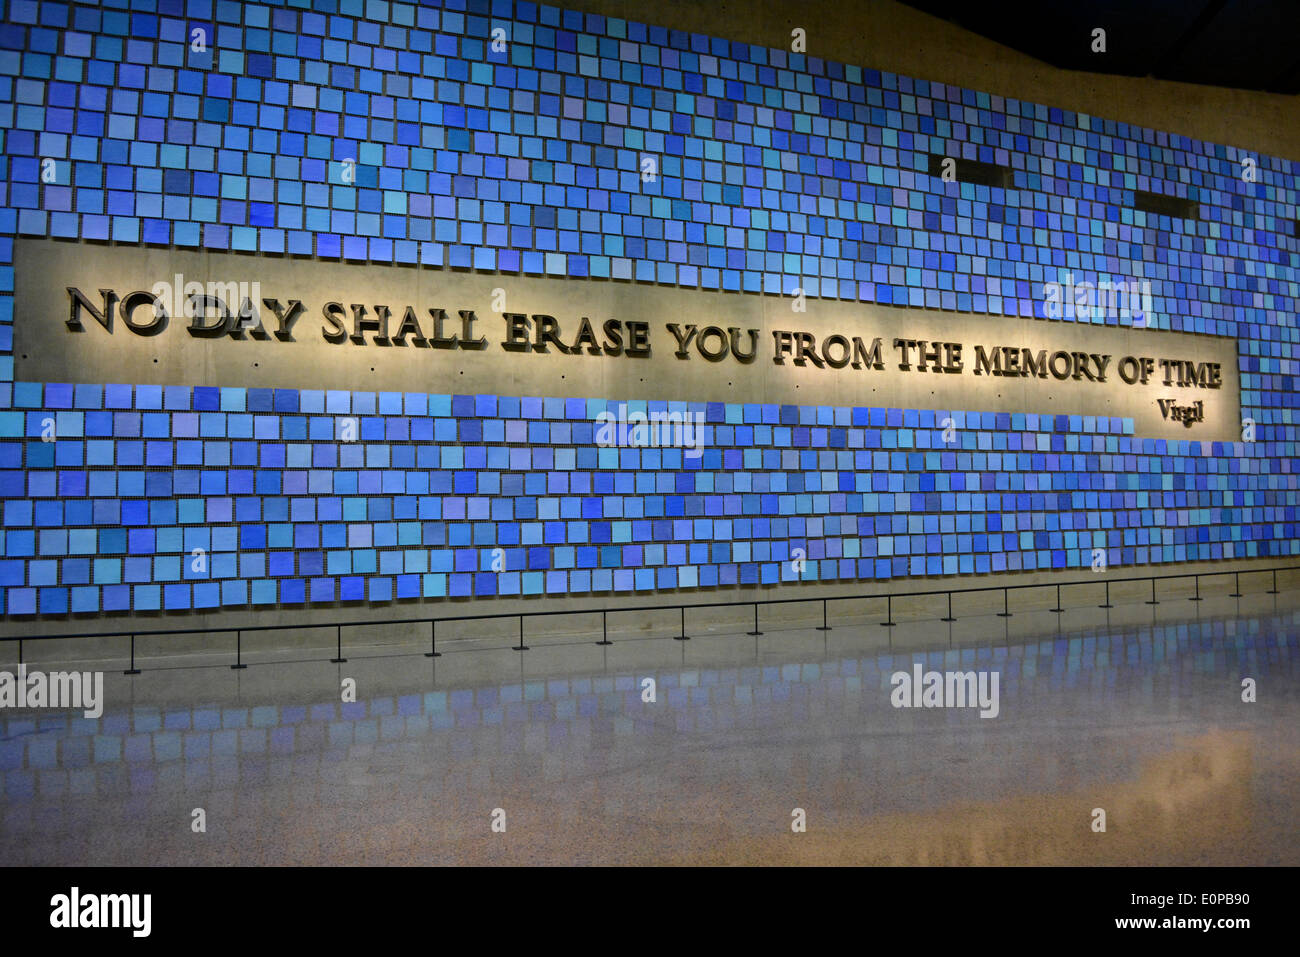 New York, NY, USA. 16th May, 2014. Virgil quote in Memorial Hall at the newly opened 9/11 Museum at Ground Zero in New York City. Credit:  Christopher Penler/Alamy Live News - Stock Image